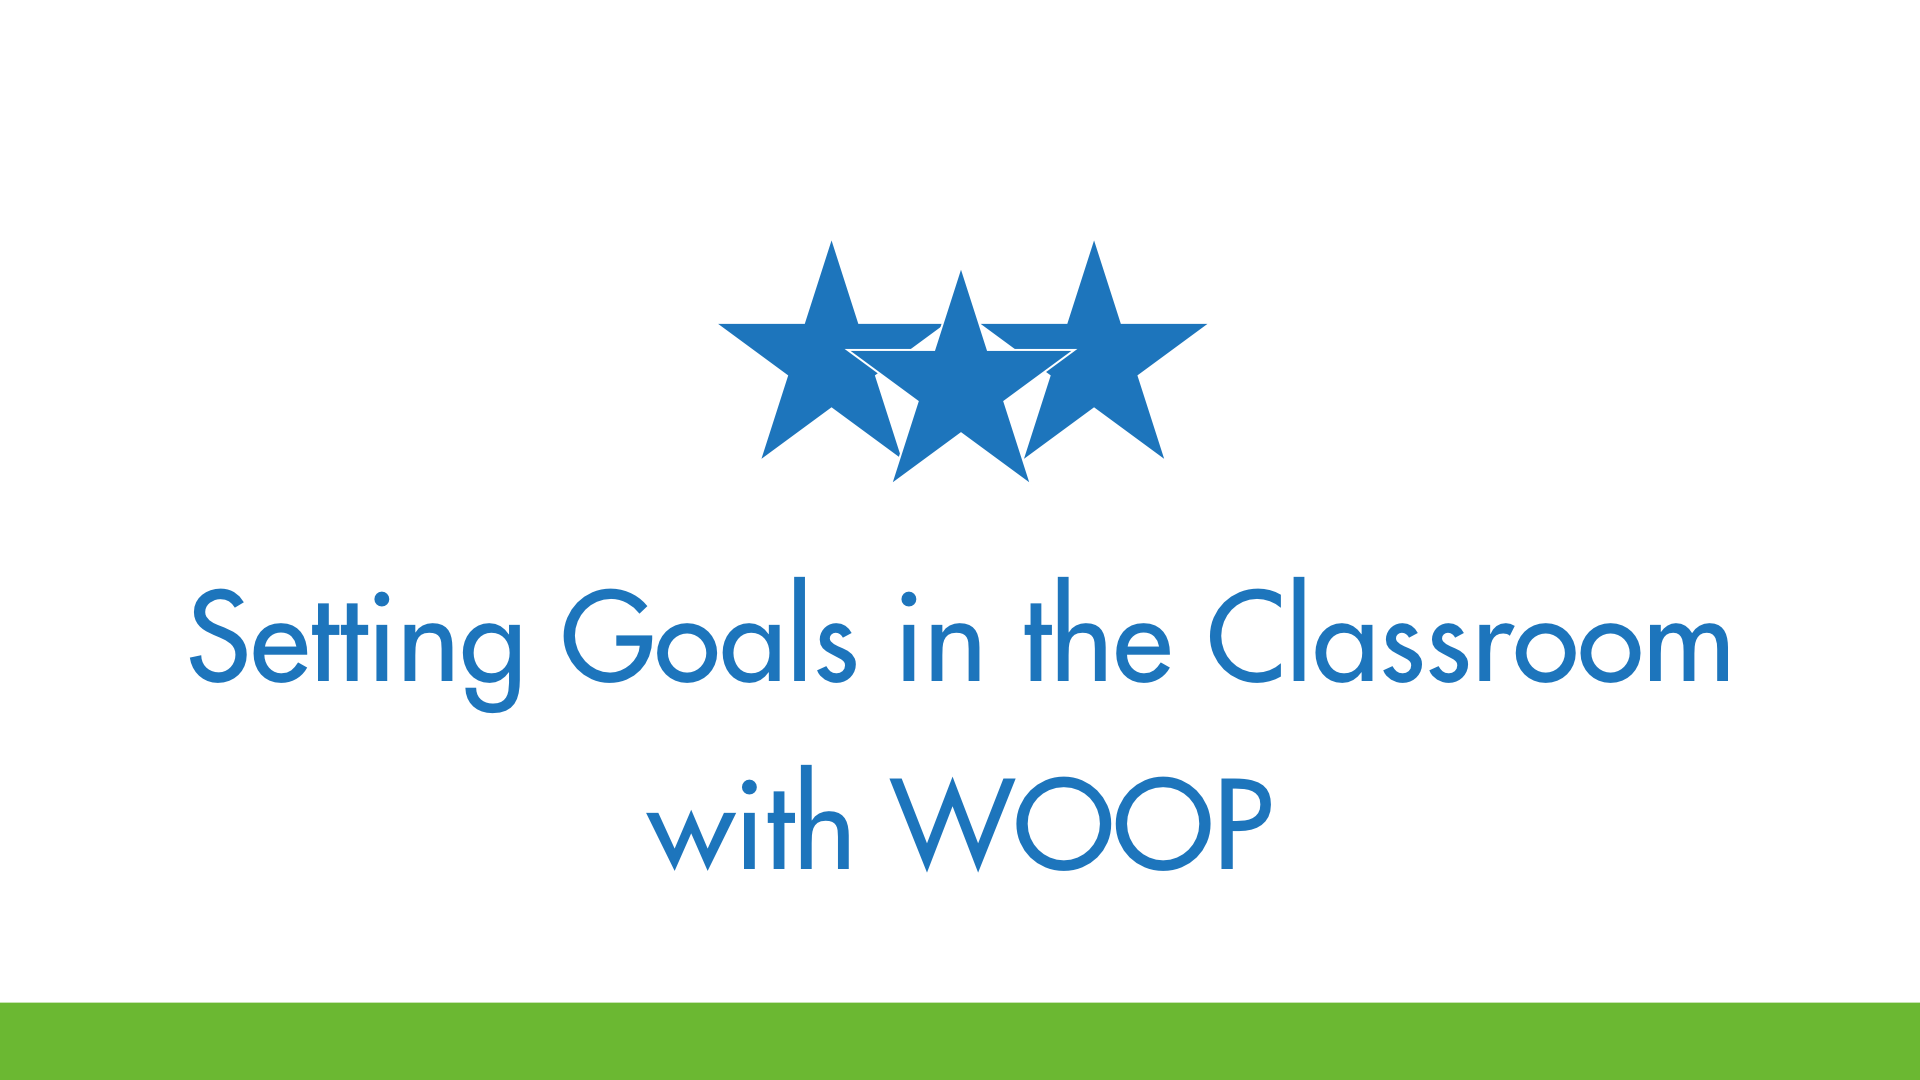 Setting Goals in the Classroom with WOOP